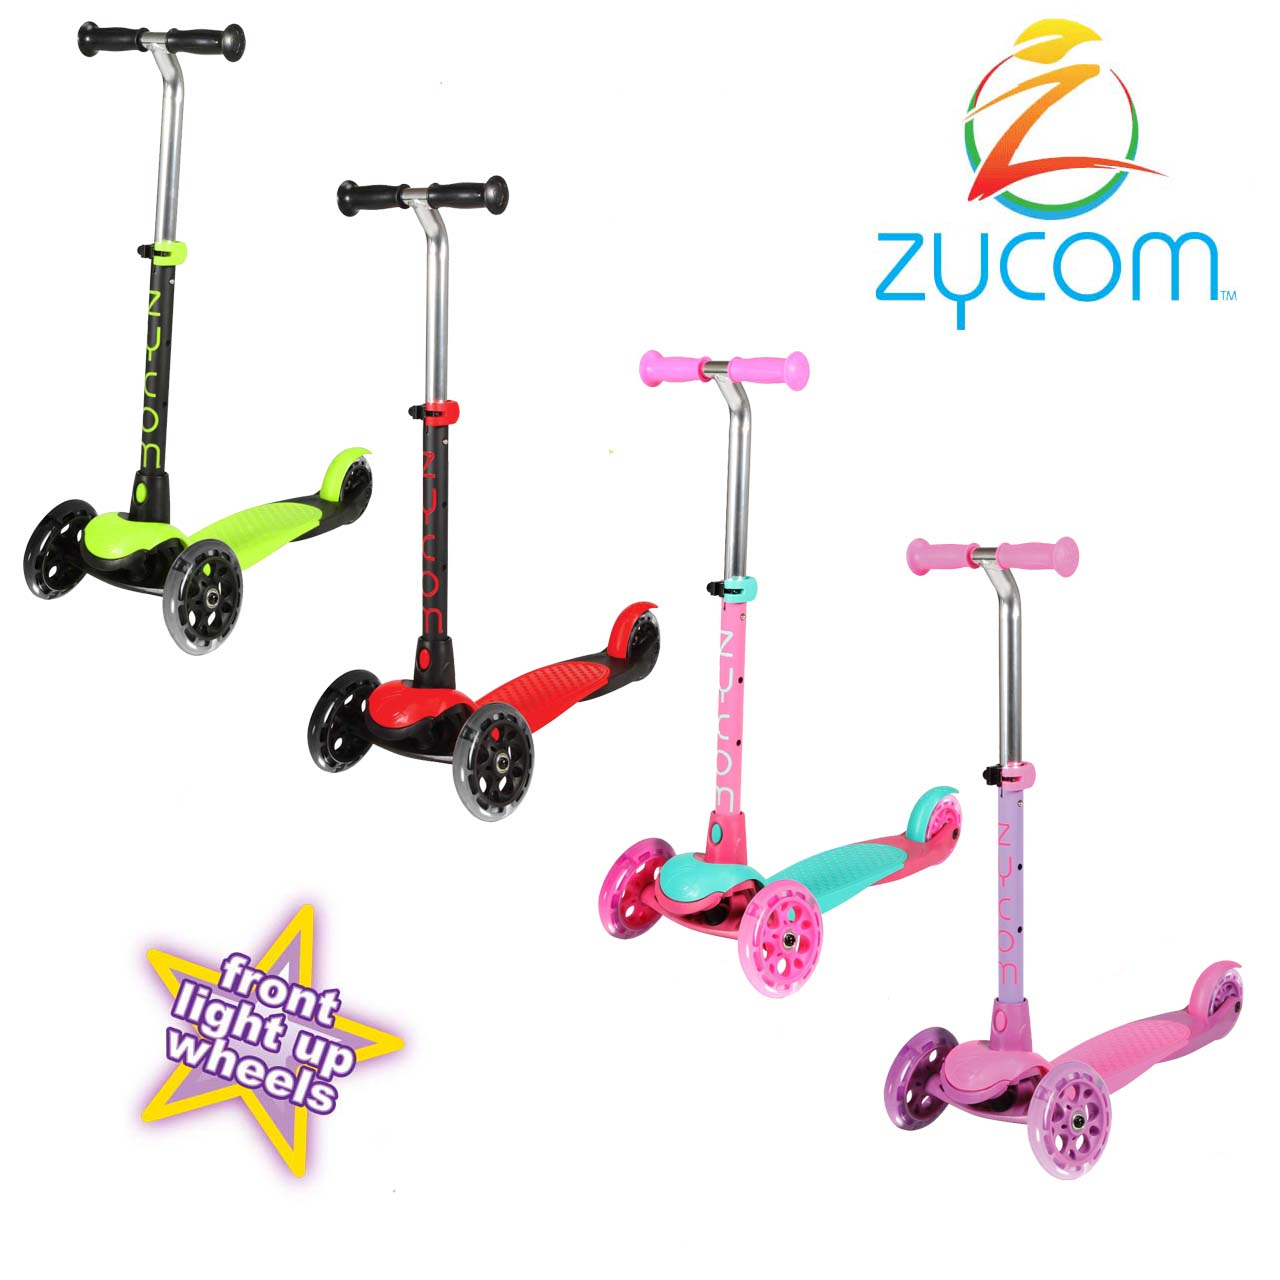 Zycom Zing 3 Wheel Scooter inc Light Up Wheels